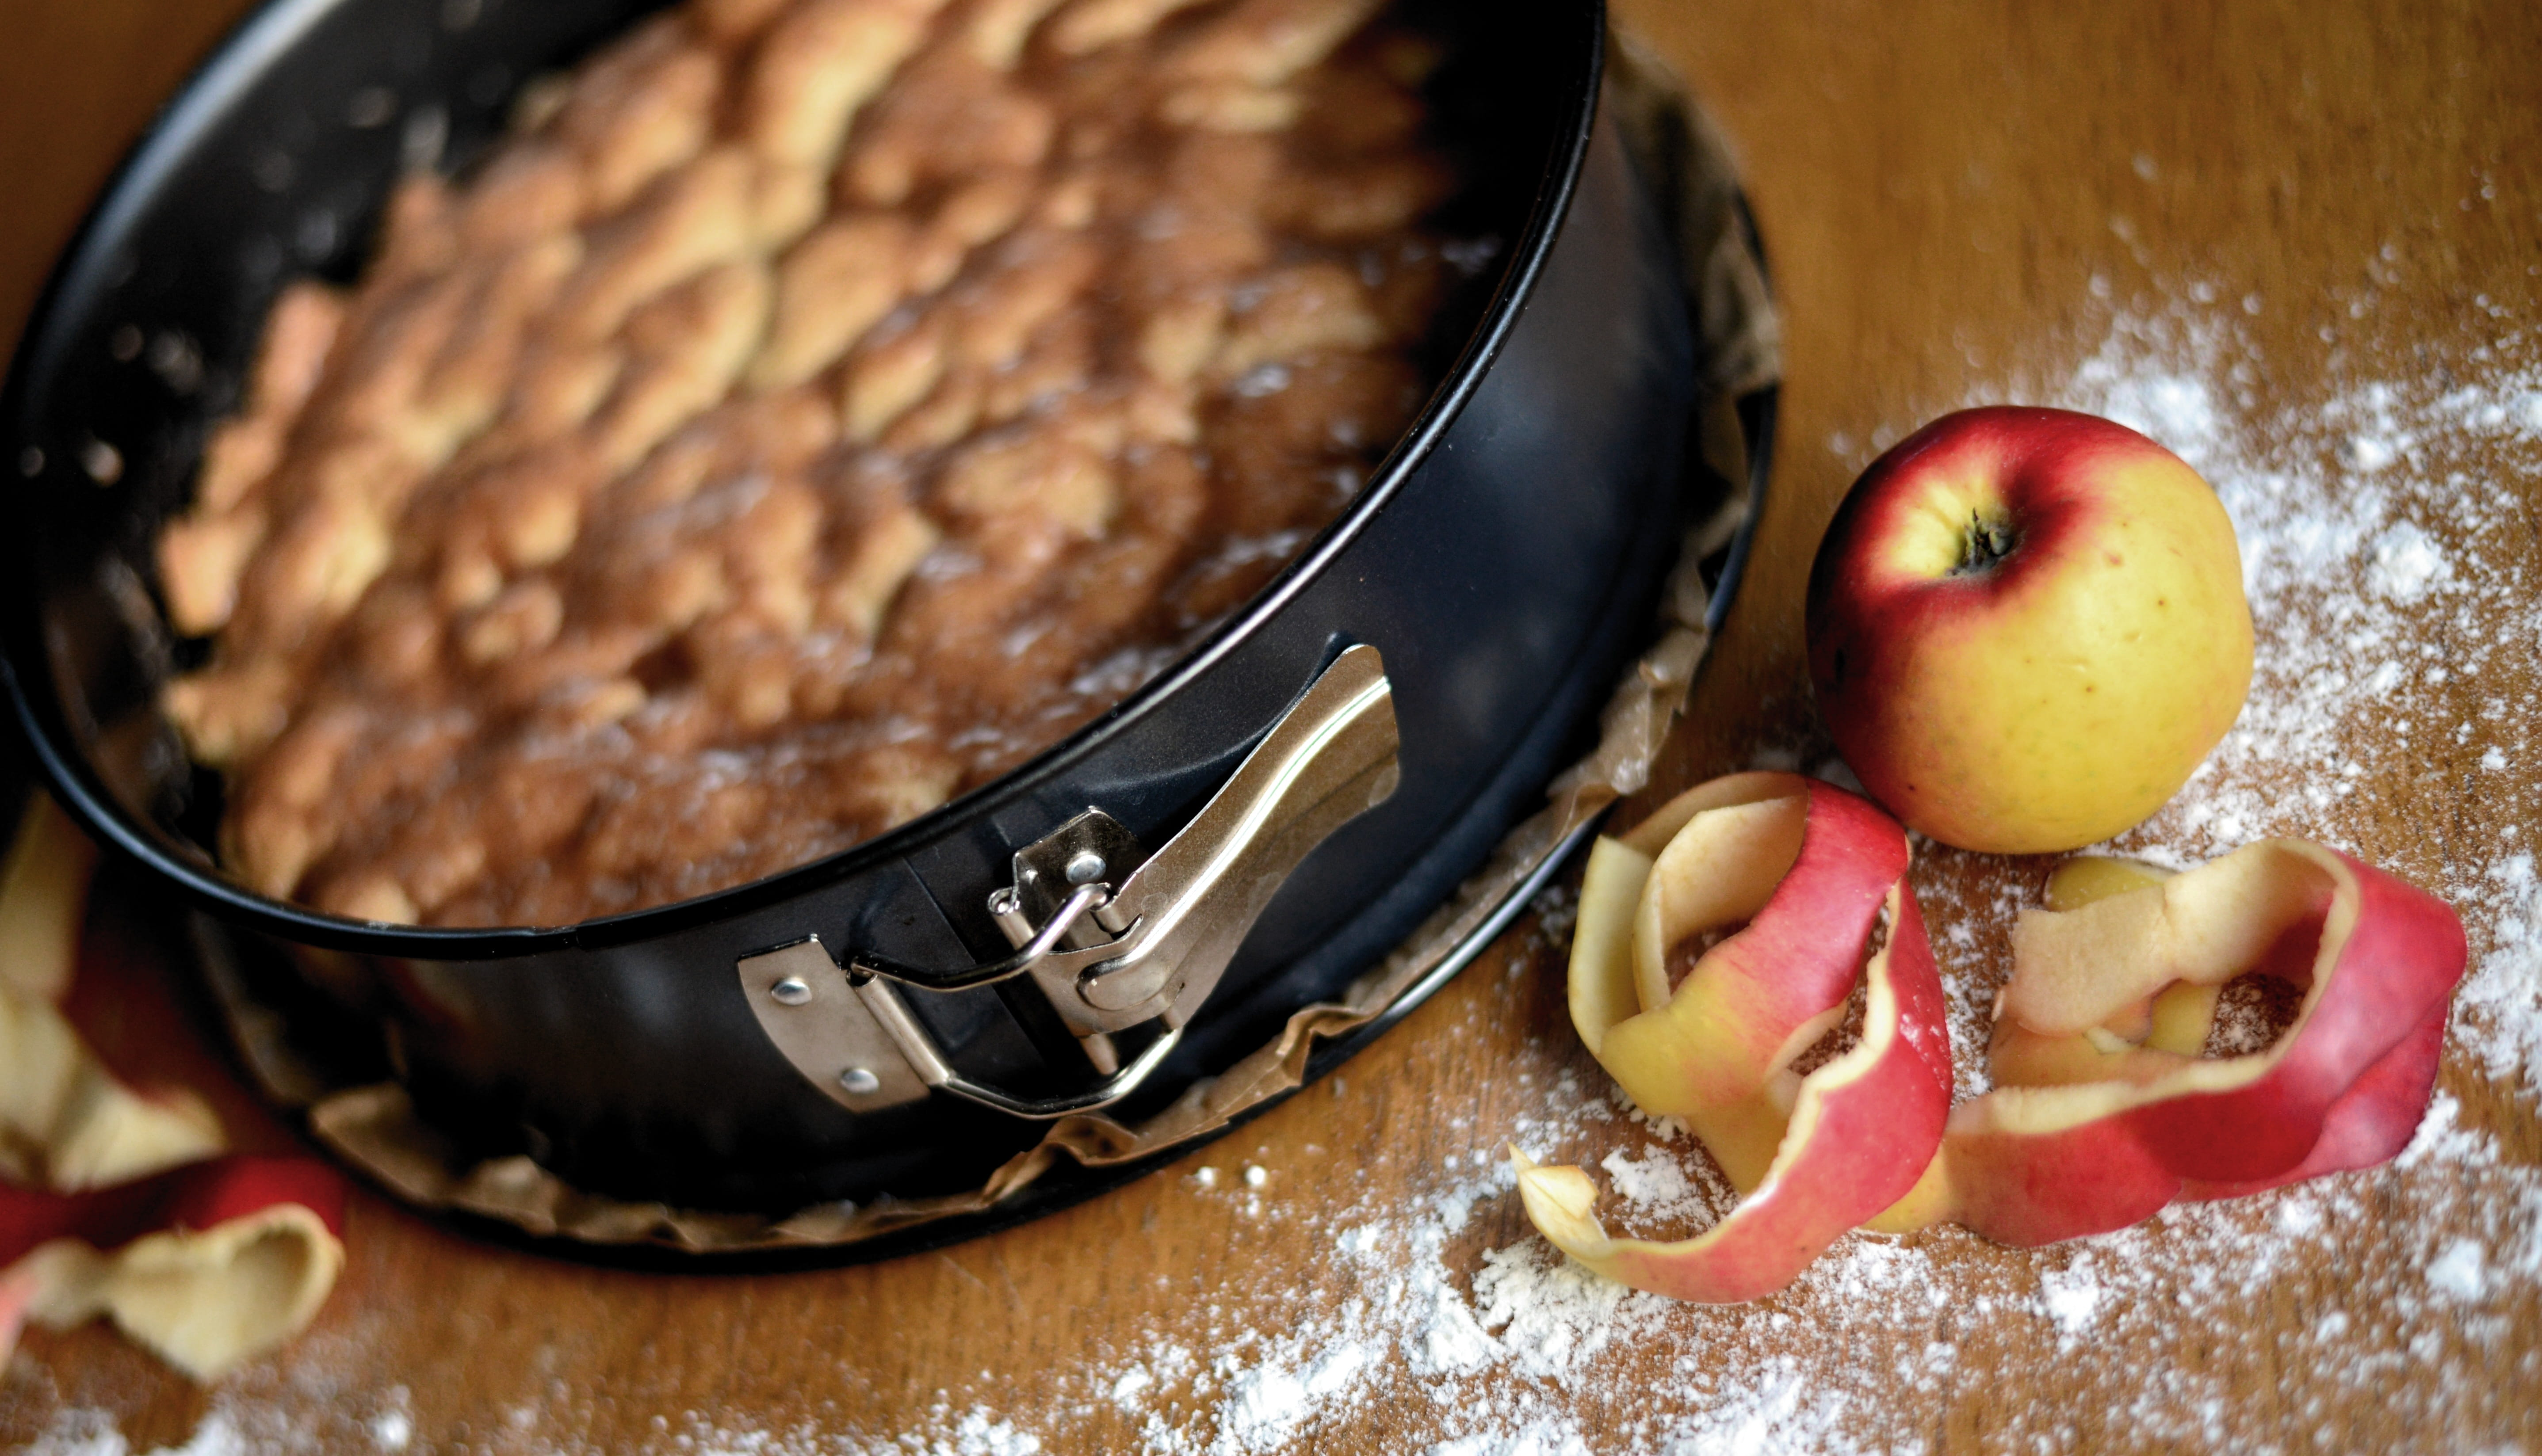 Taste Of Culture Virtual Experience; Bake a Dutch Apple Pie with a Pro!